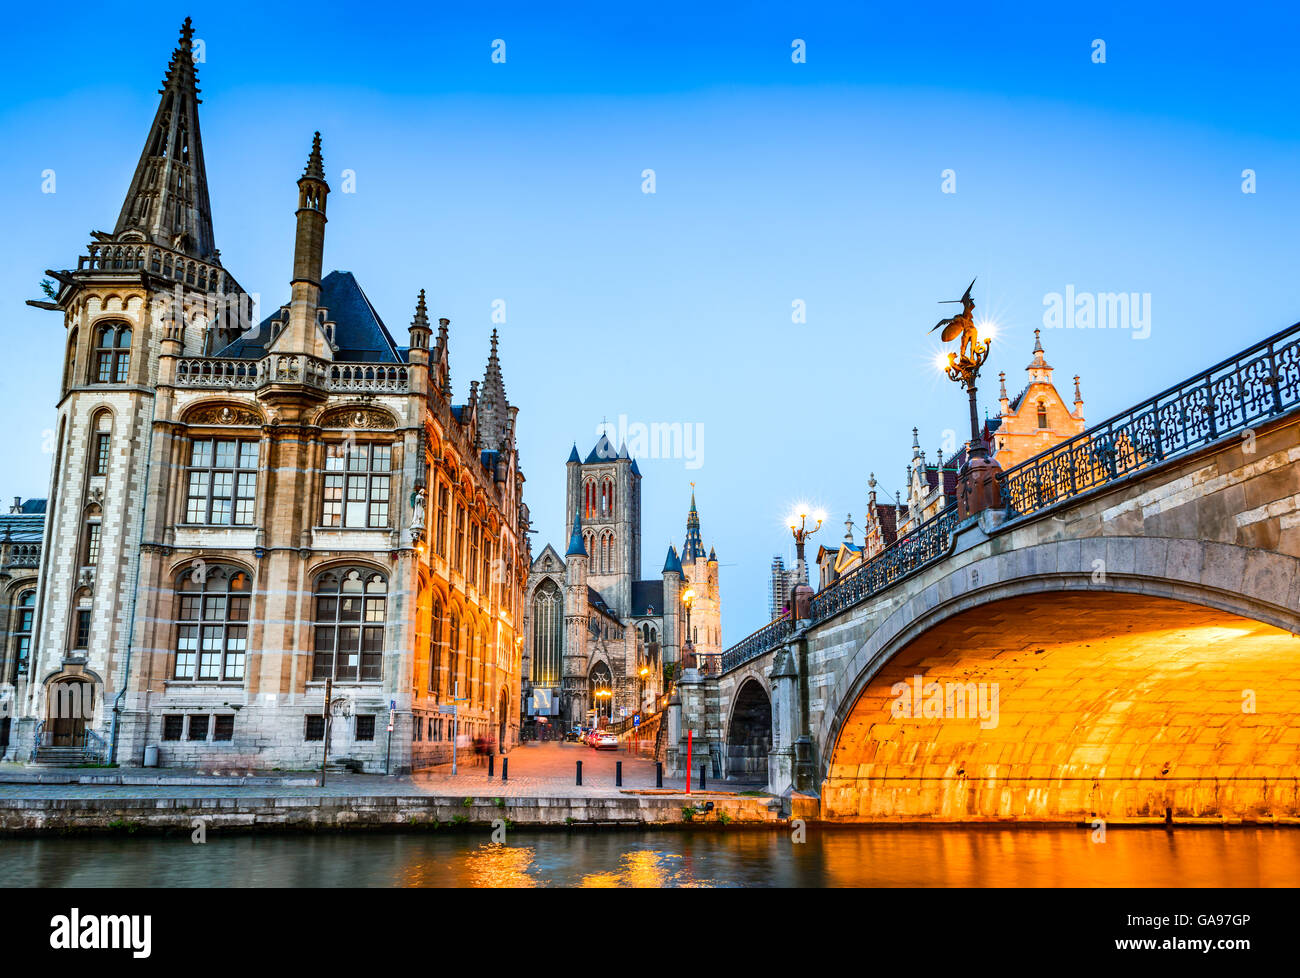 Gent, Belgium. The historic center of Ghent (Gand), embankment Graslei at night. Former center of the medieval harbor, - Stock Image